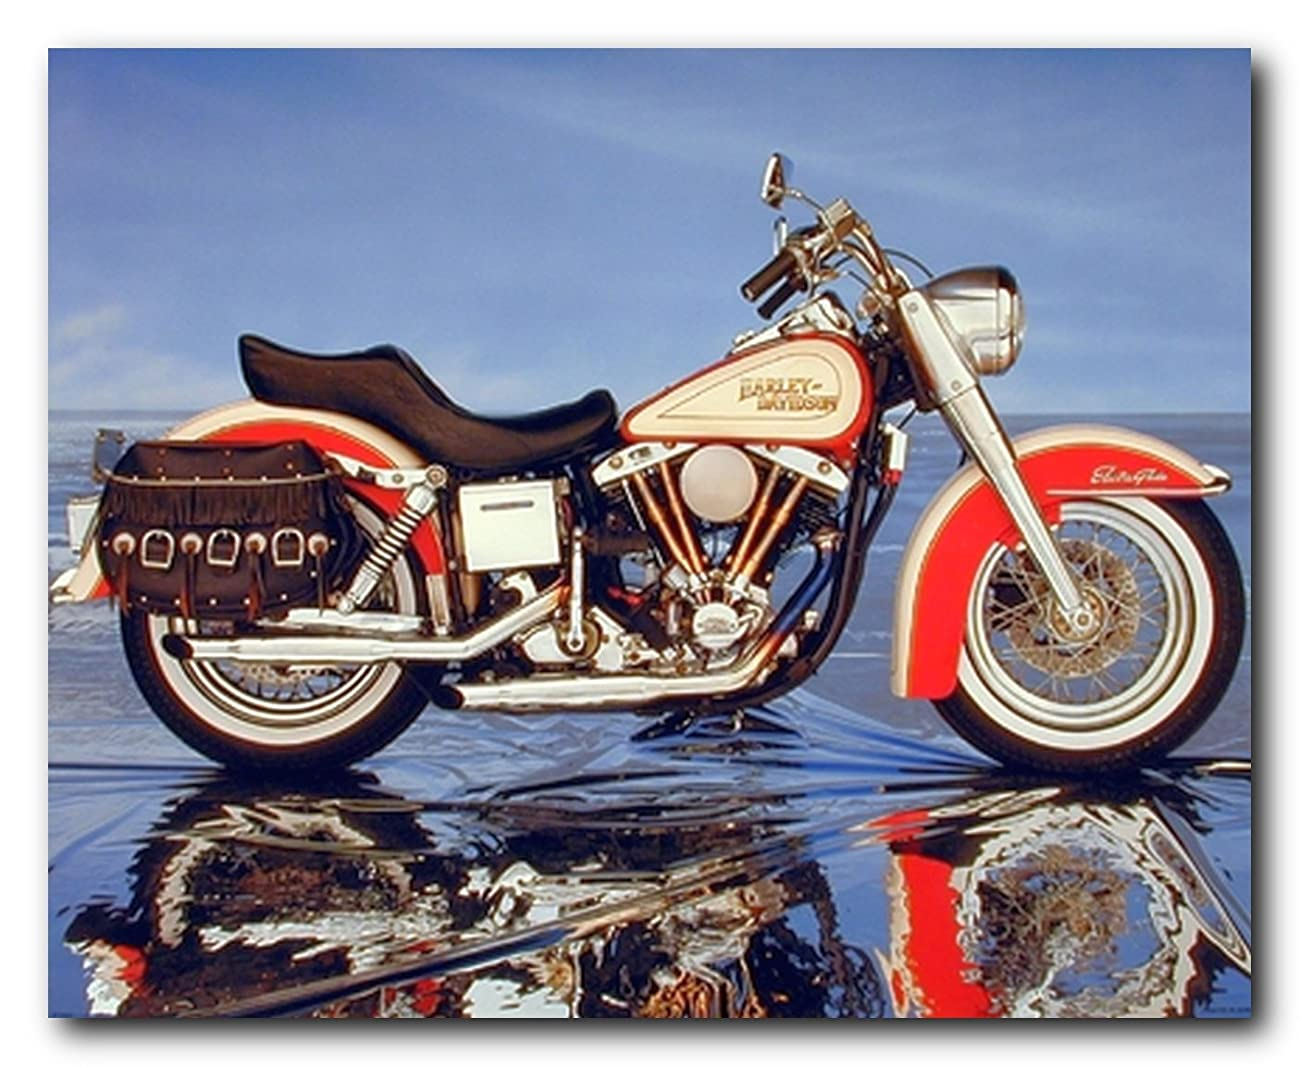 Vintage Motorcycle Harley Davidson Electra Glide Wall Decor Art Print Poster (16x20) 0